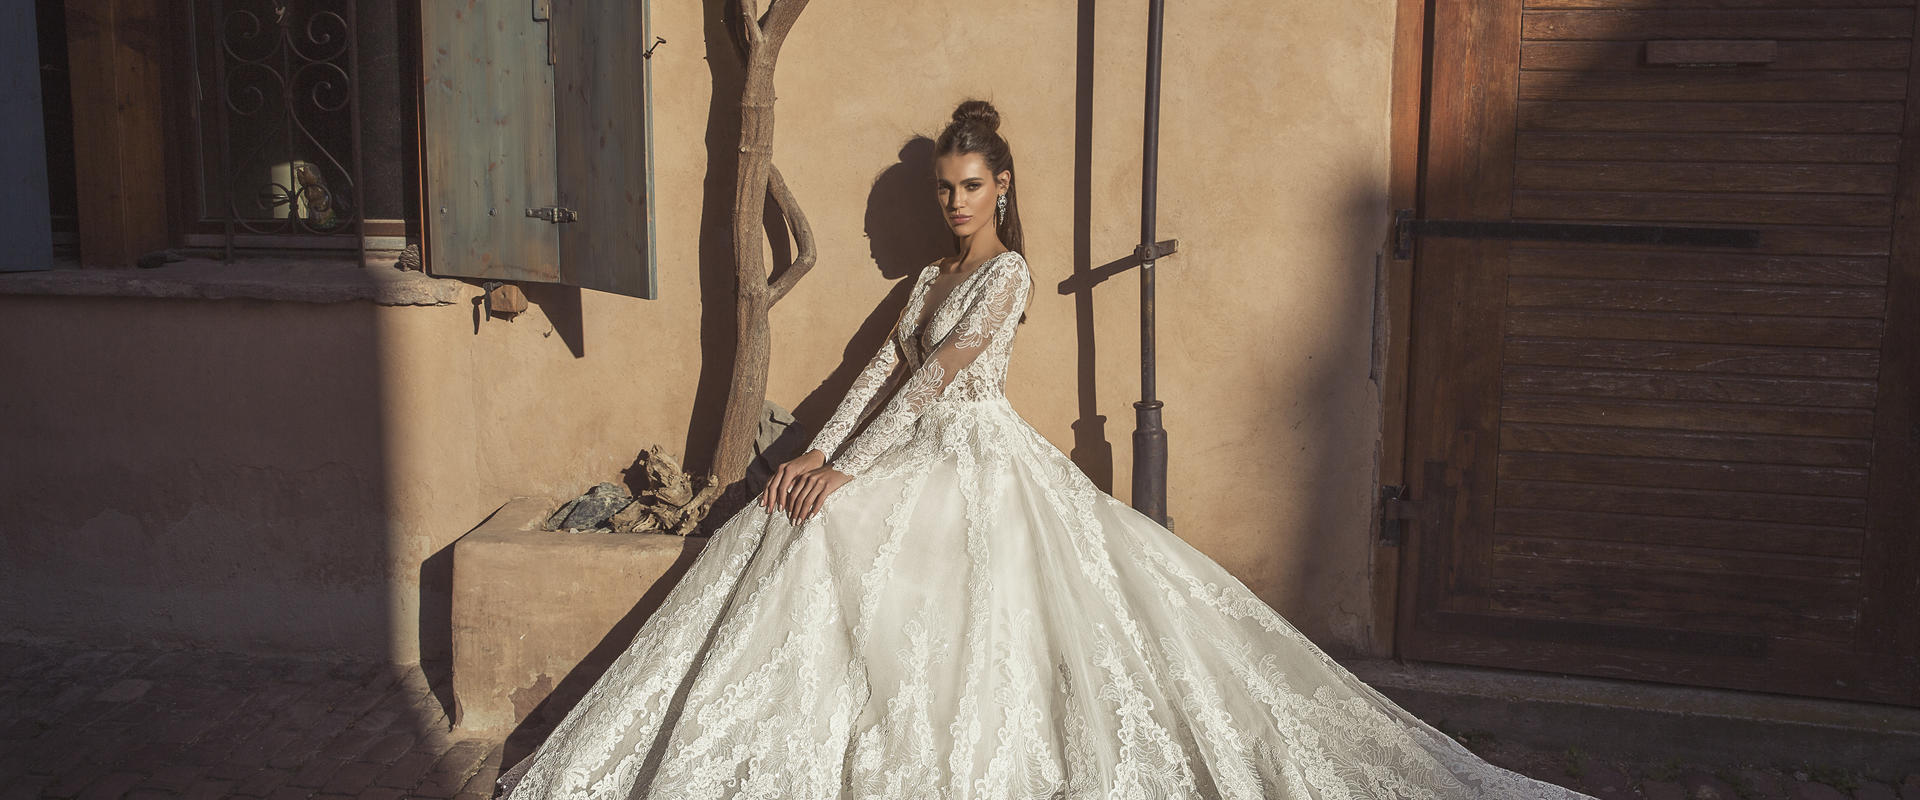 Lite by DOMINISS | Fashion Bride